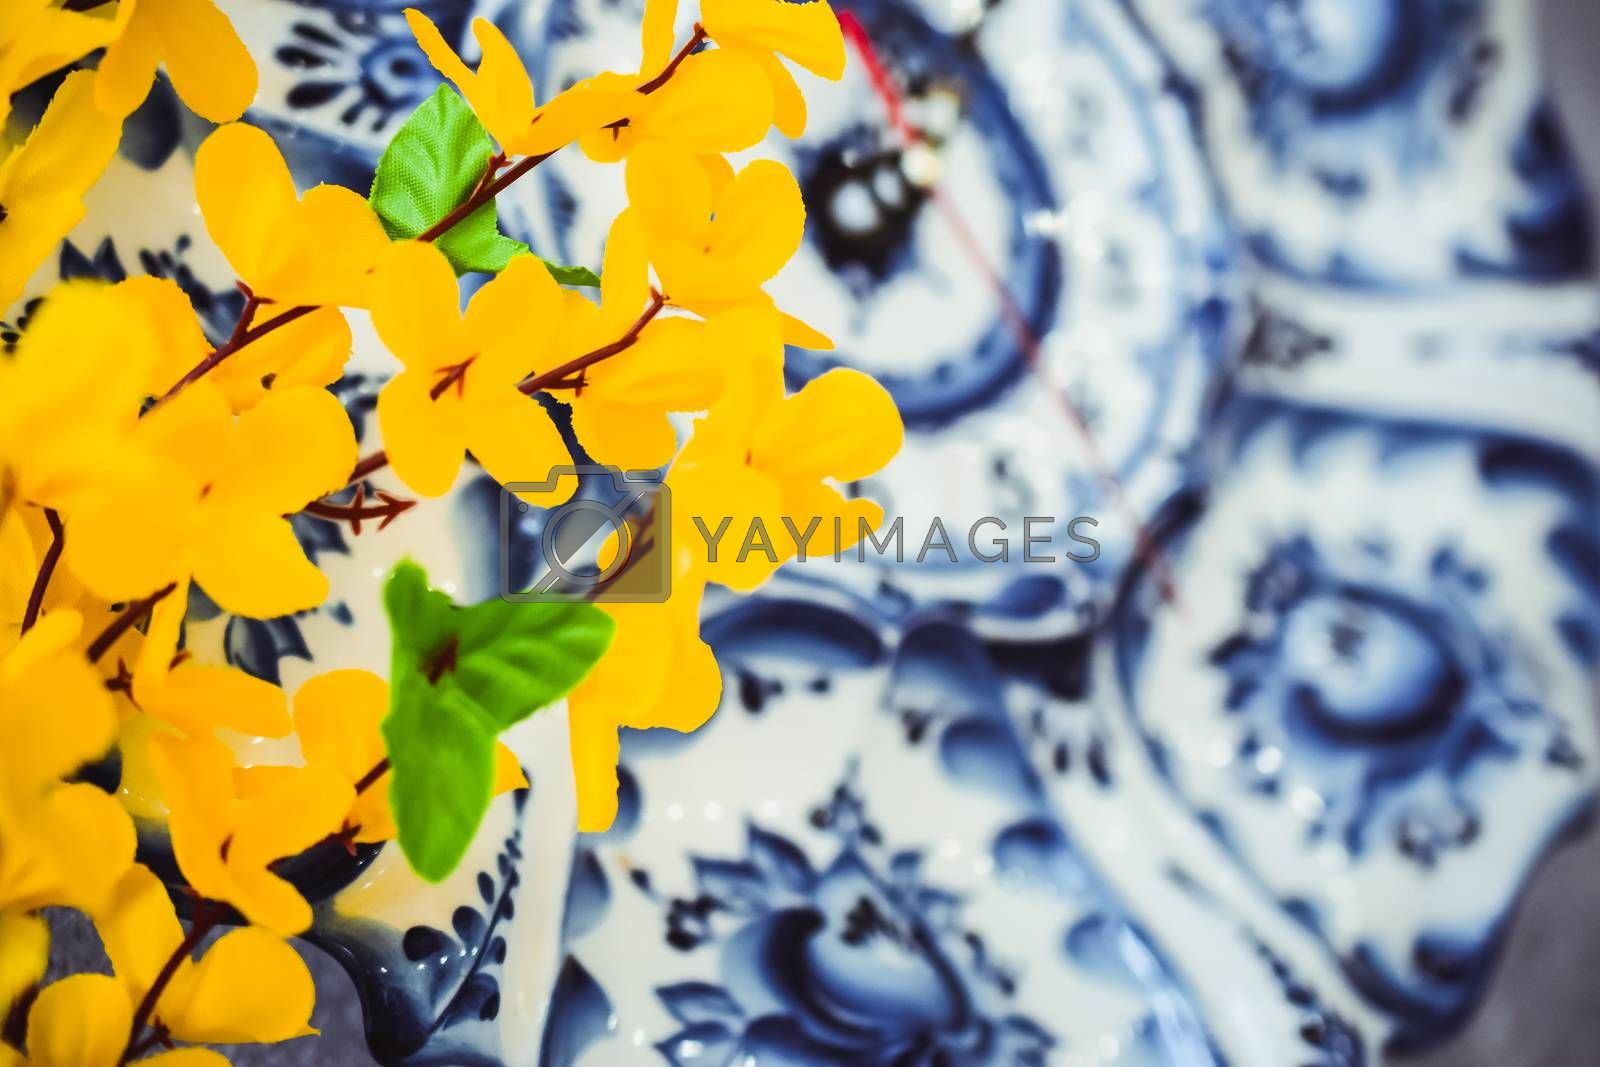 flowers made of artificial materials yellow, acacia flowers